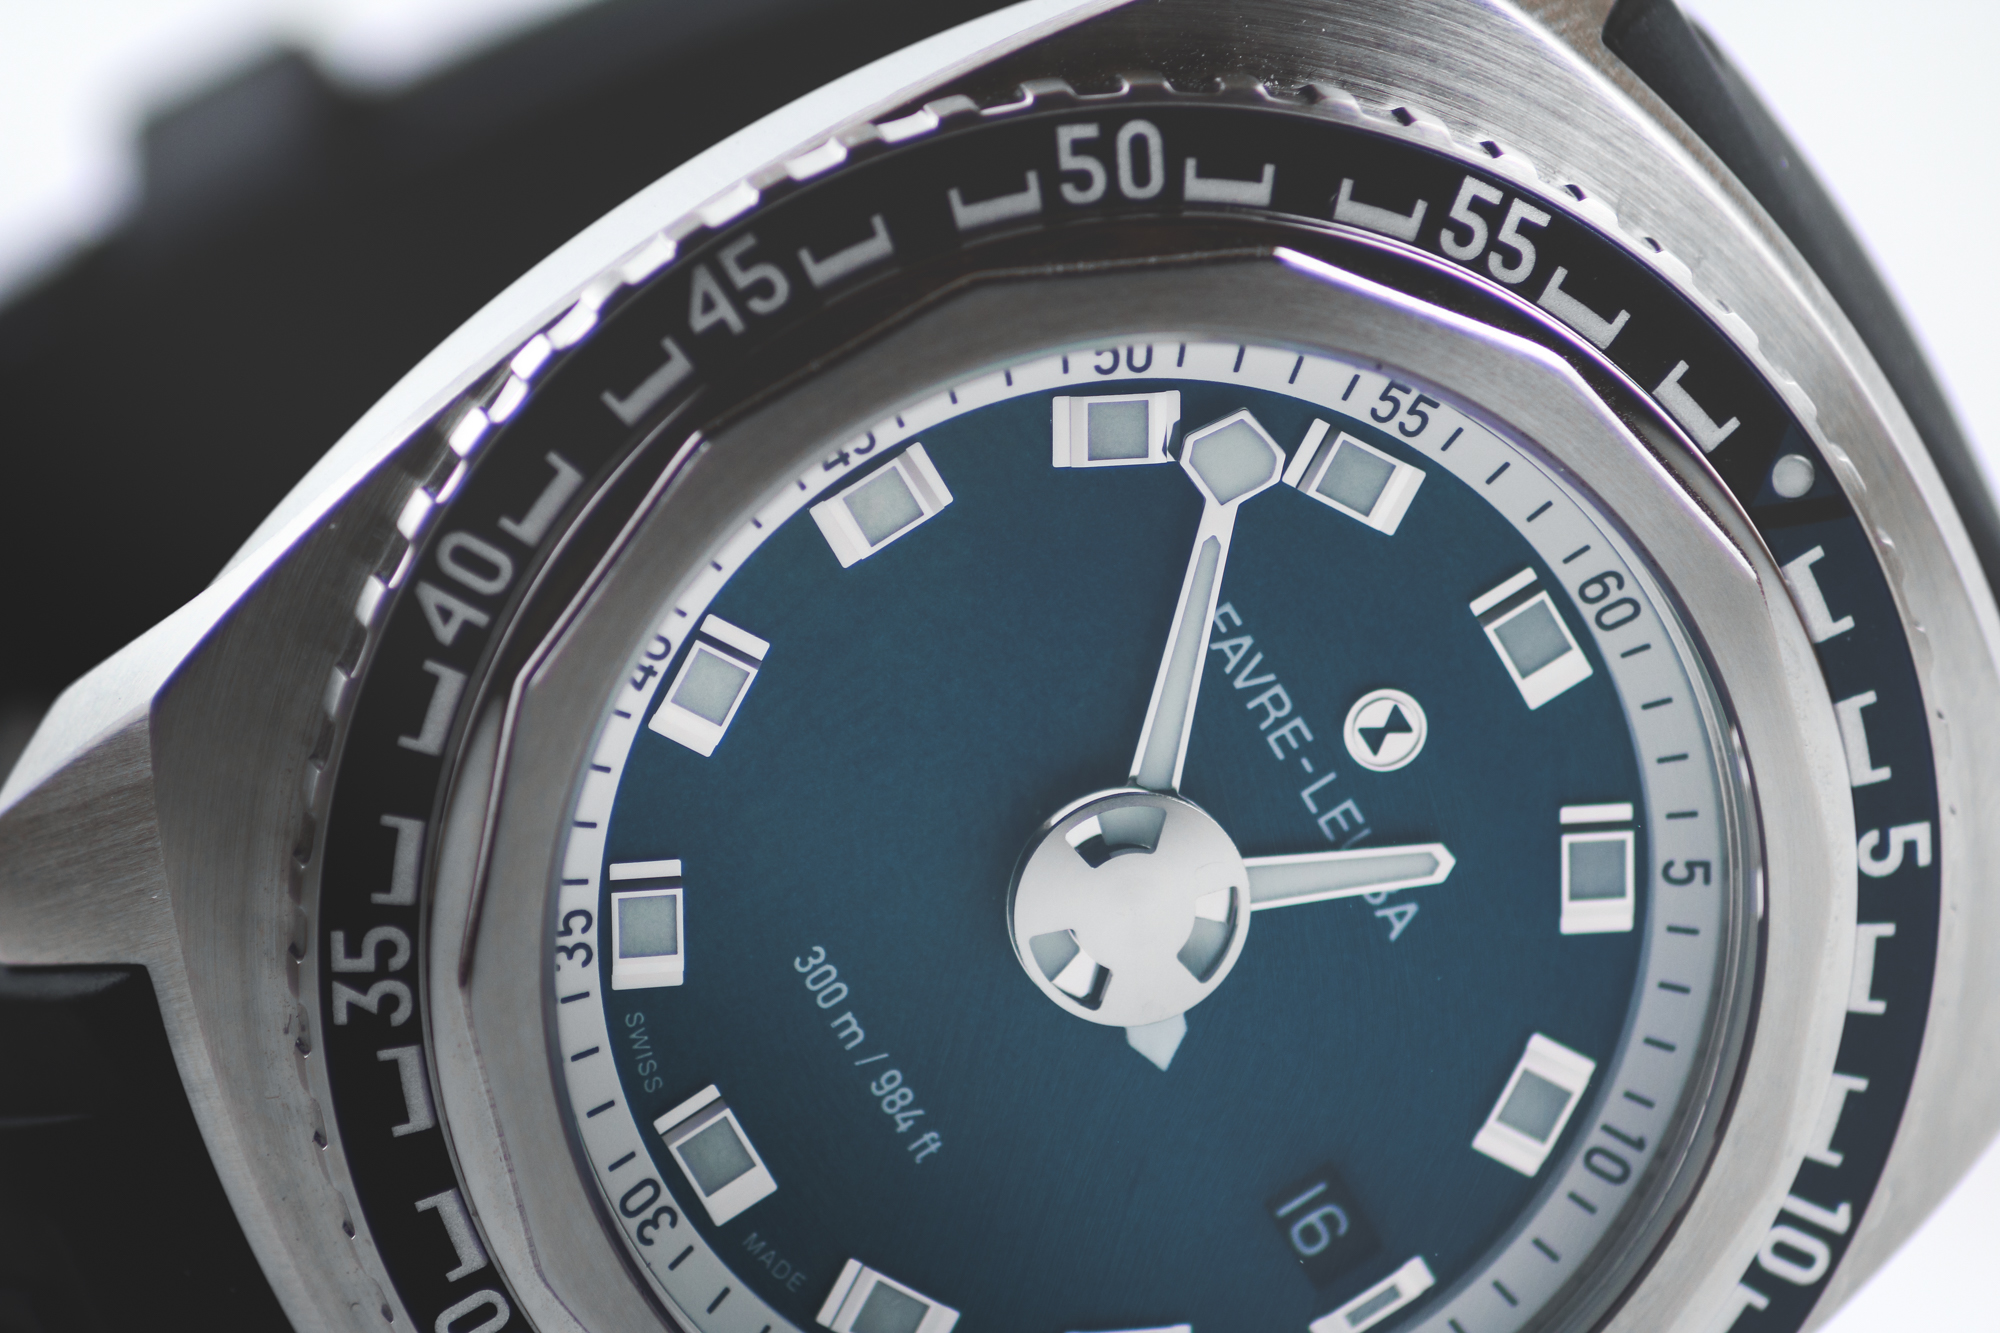 The Raider Deep Blue Watch